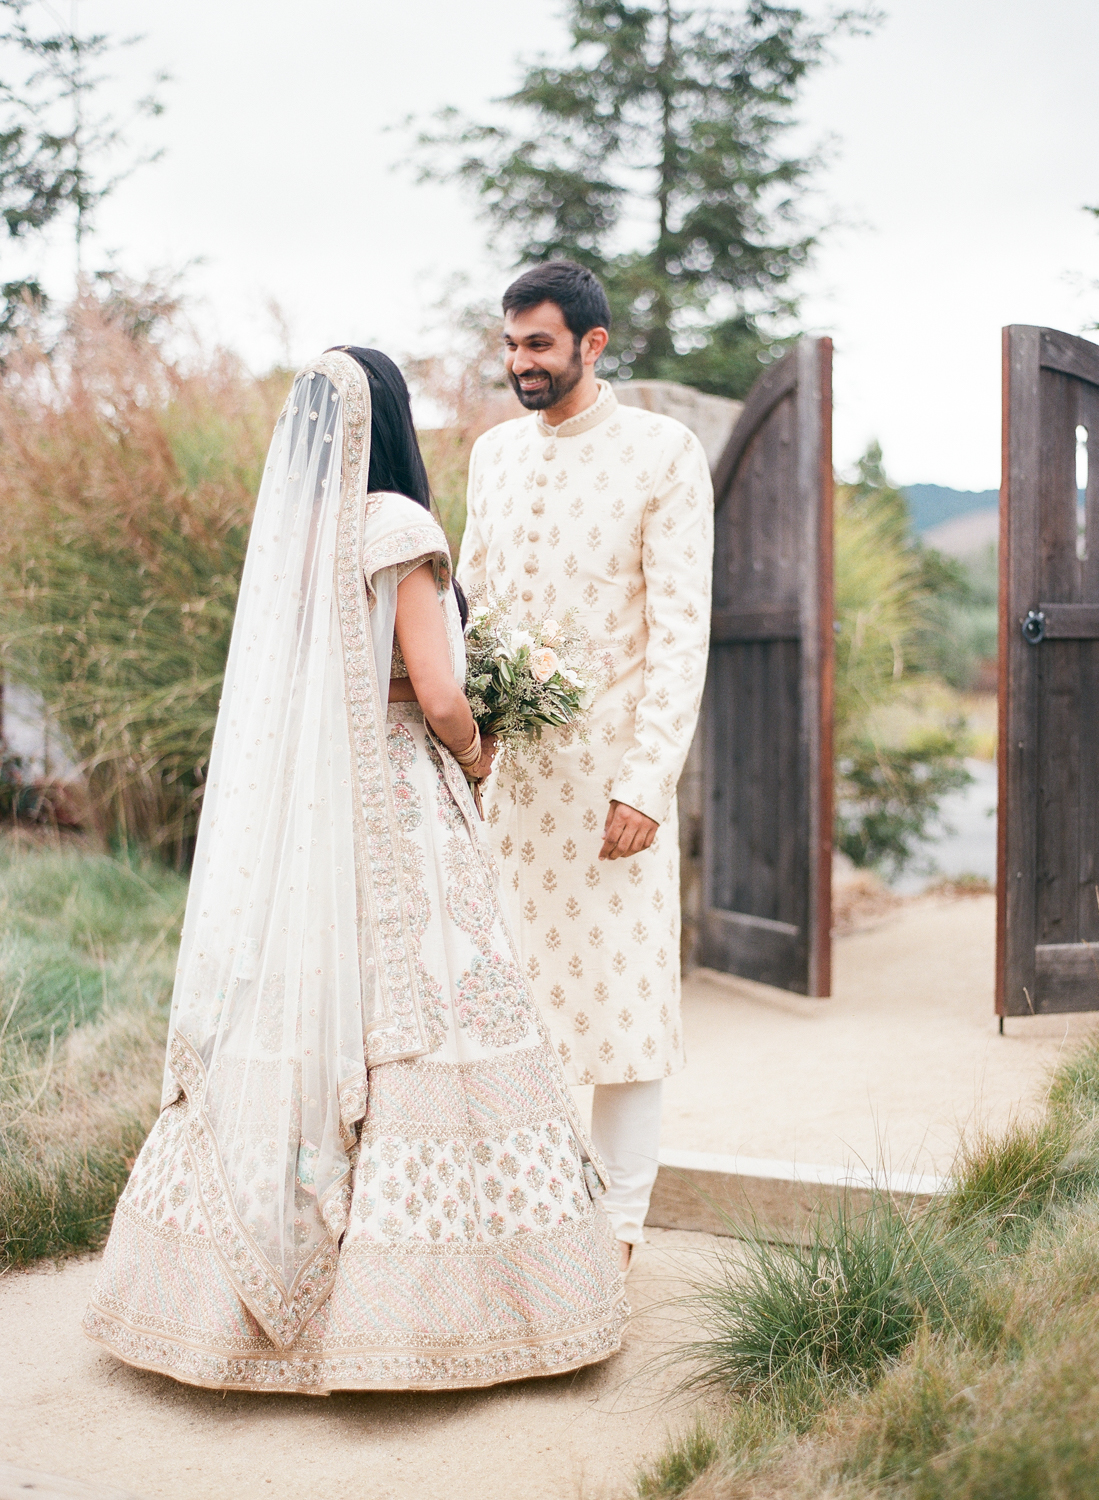 bride and groom share first look in garden area before wedding ceremony